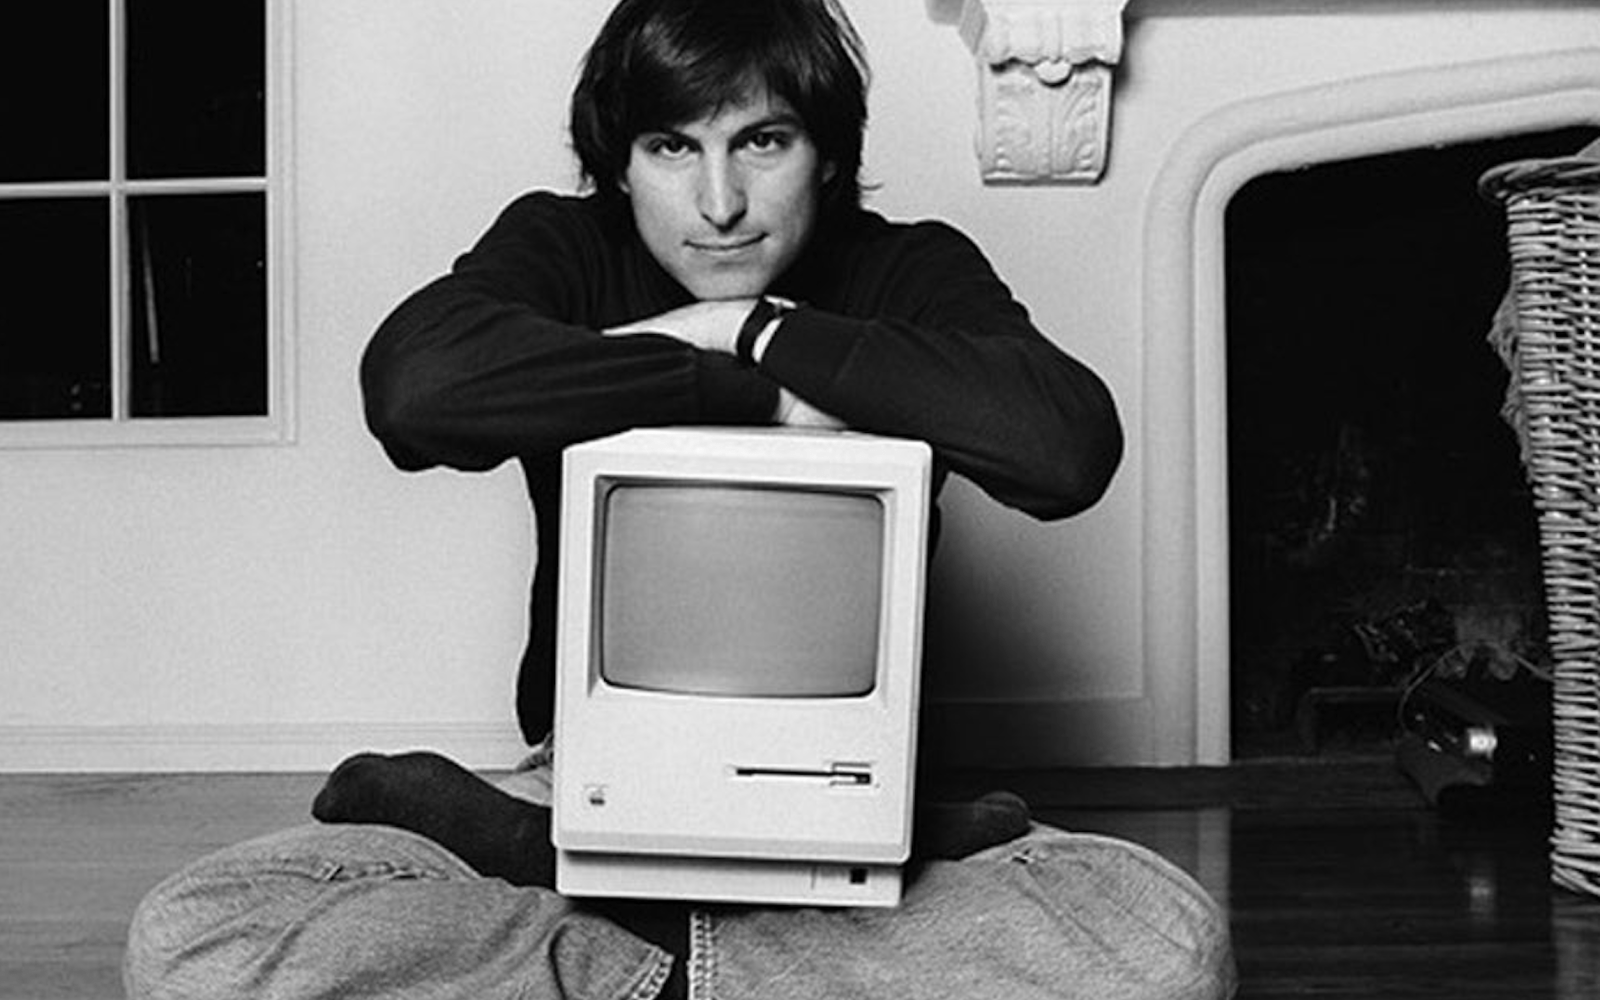 Seiko to re-release the watch worn by Steve Jobs in one of his most iconic photos